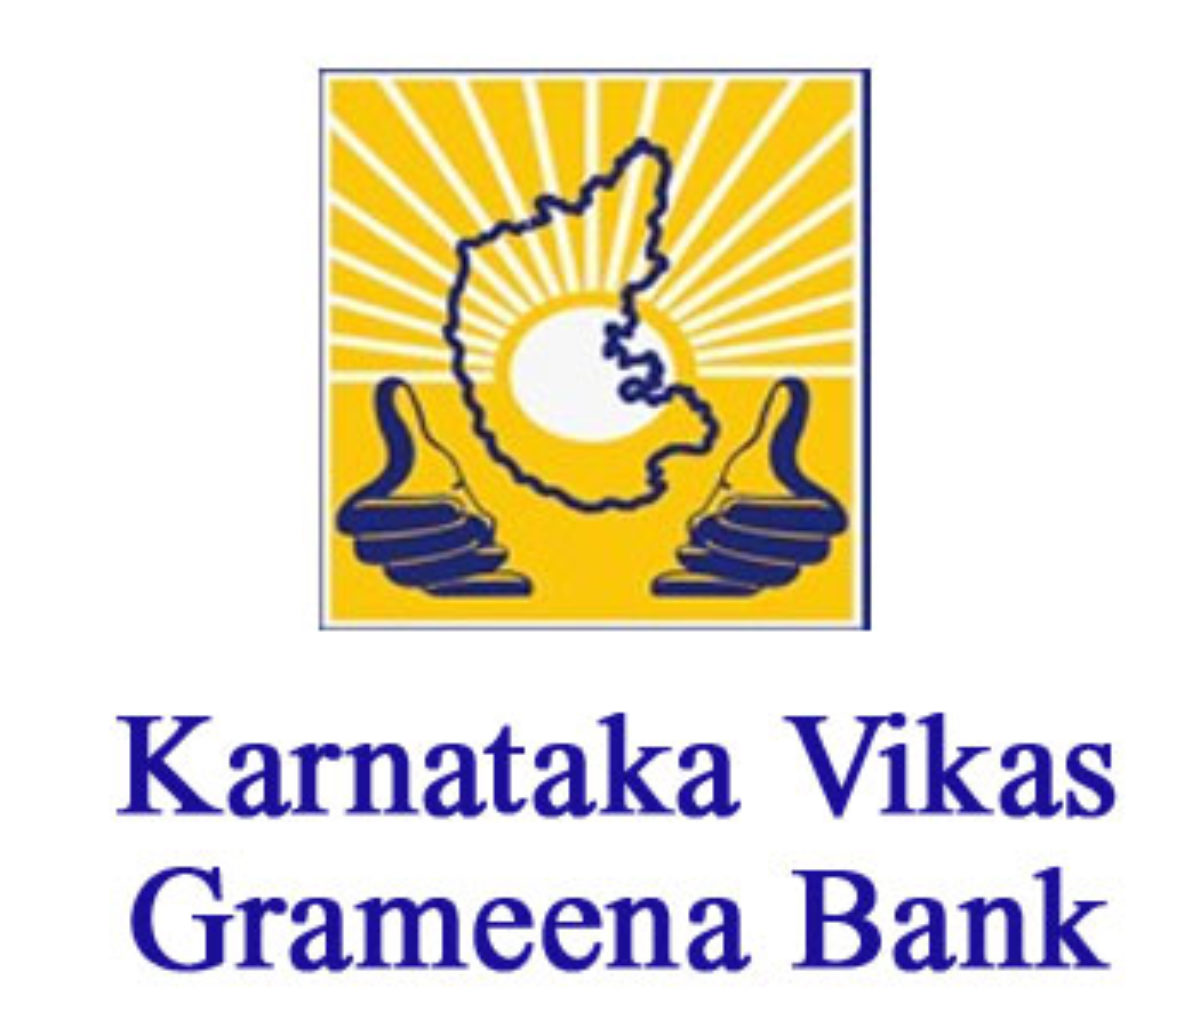 Karnataka Vikas Grameena Bank Plot Loan